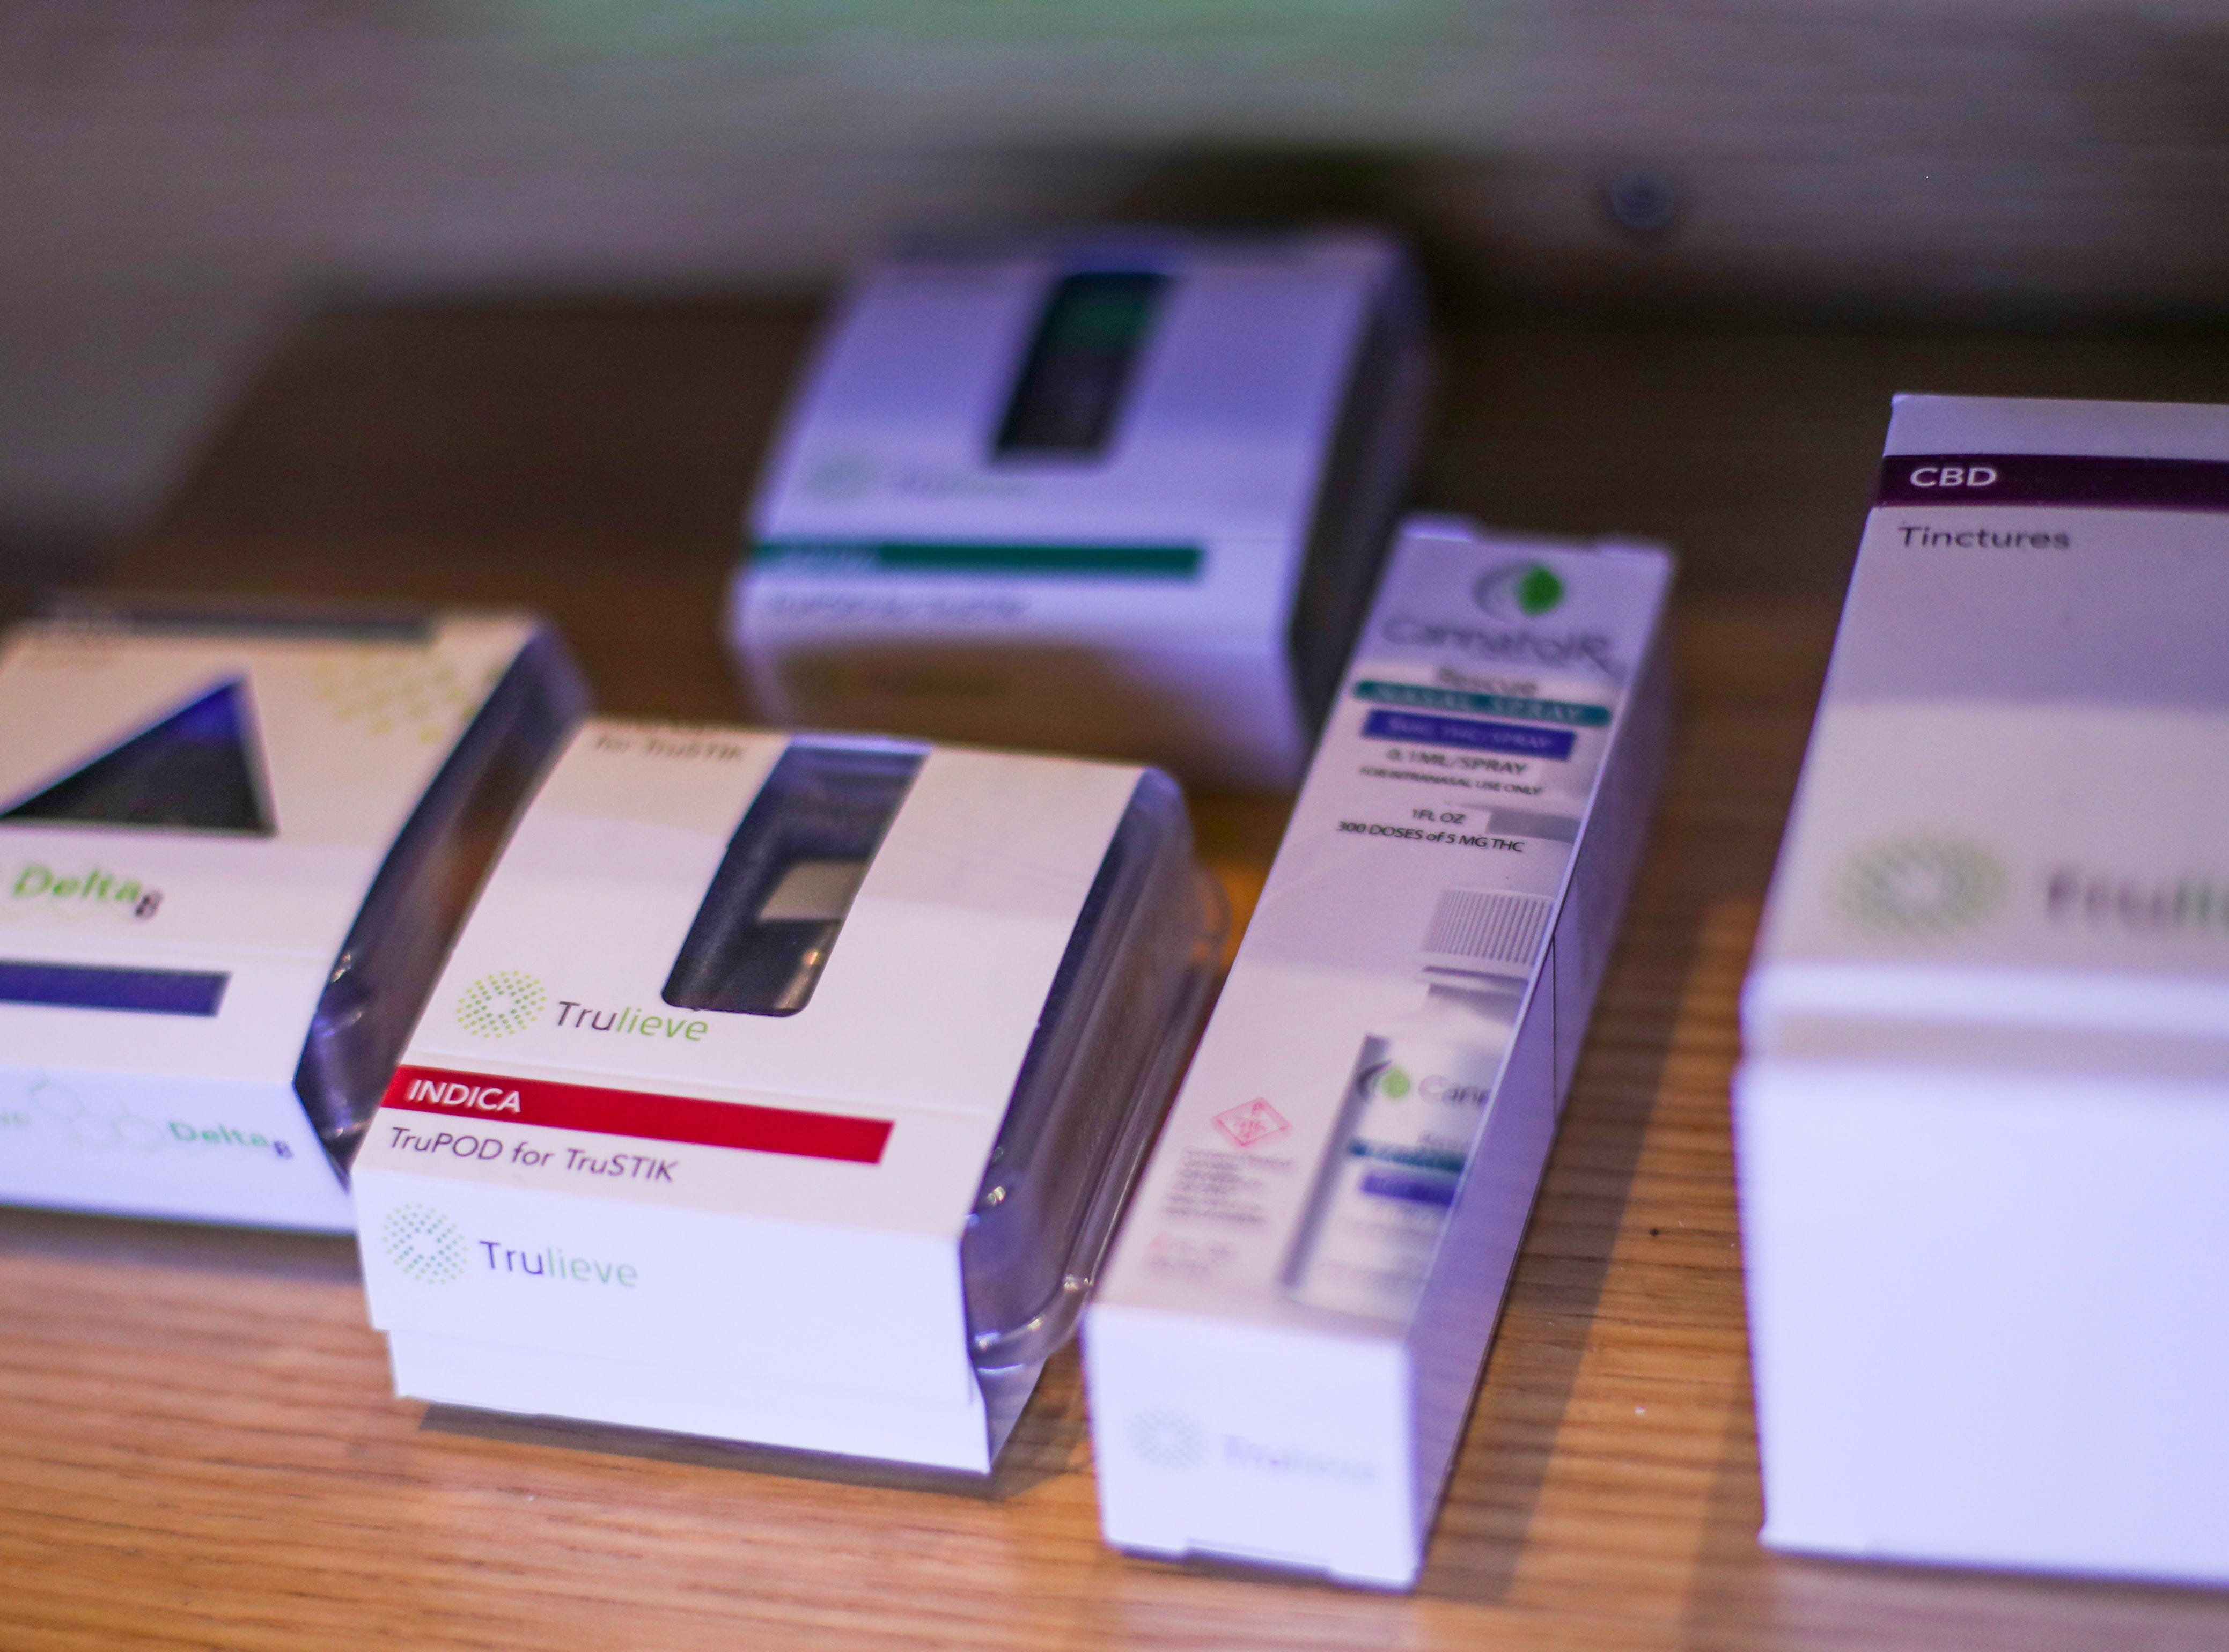 Some of the display products at Trulieve in Venice. Its products work to alleviate seizures, severe and persistent muscle spasms, pain, nausea, loss of appetite, and other symptoms associated with serious medical conditions such as cancer. Low-THC/CBD products are available for patients who need non-euphoric care.